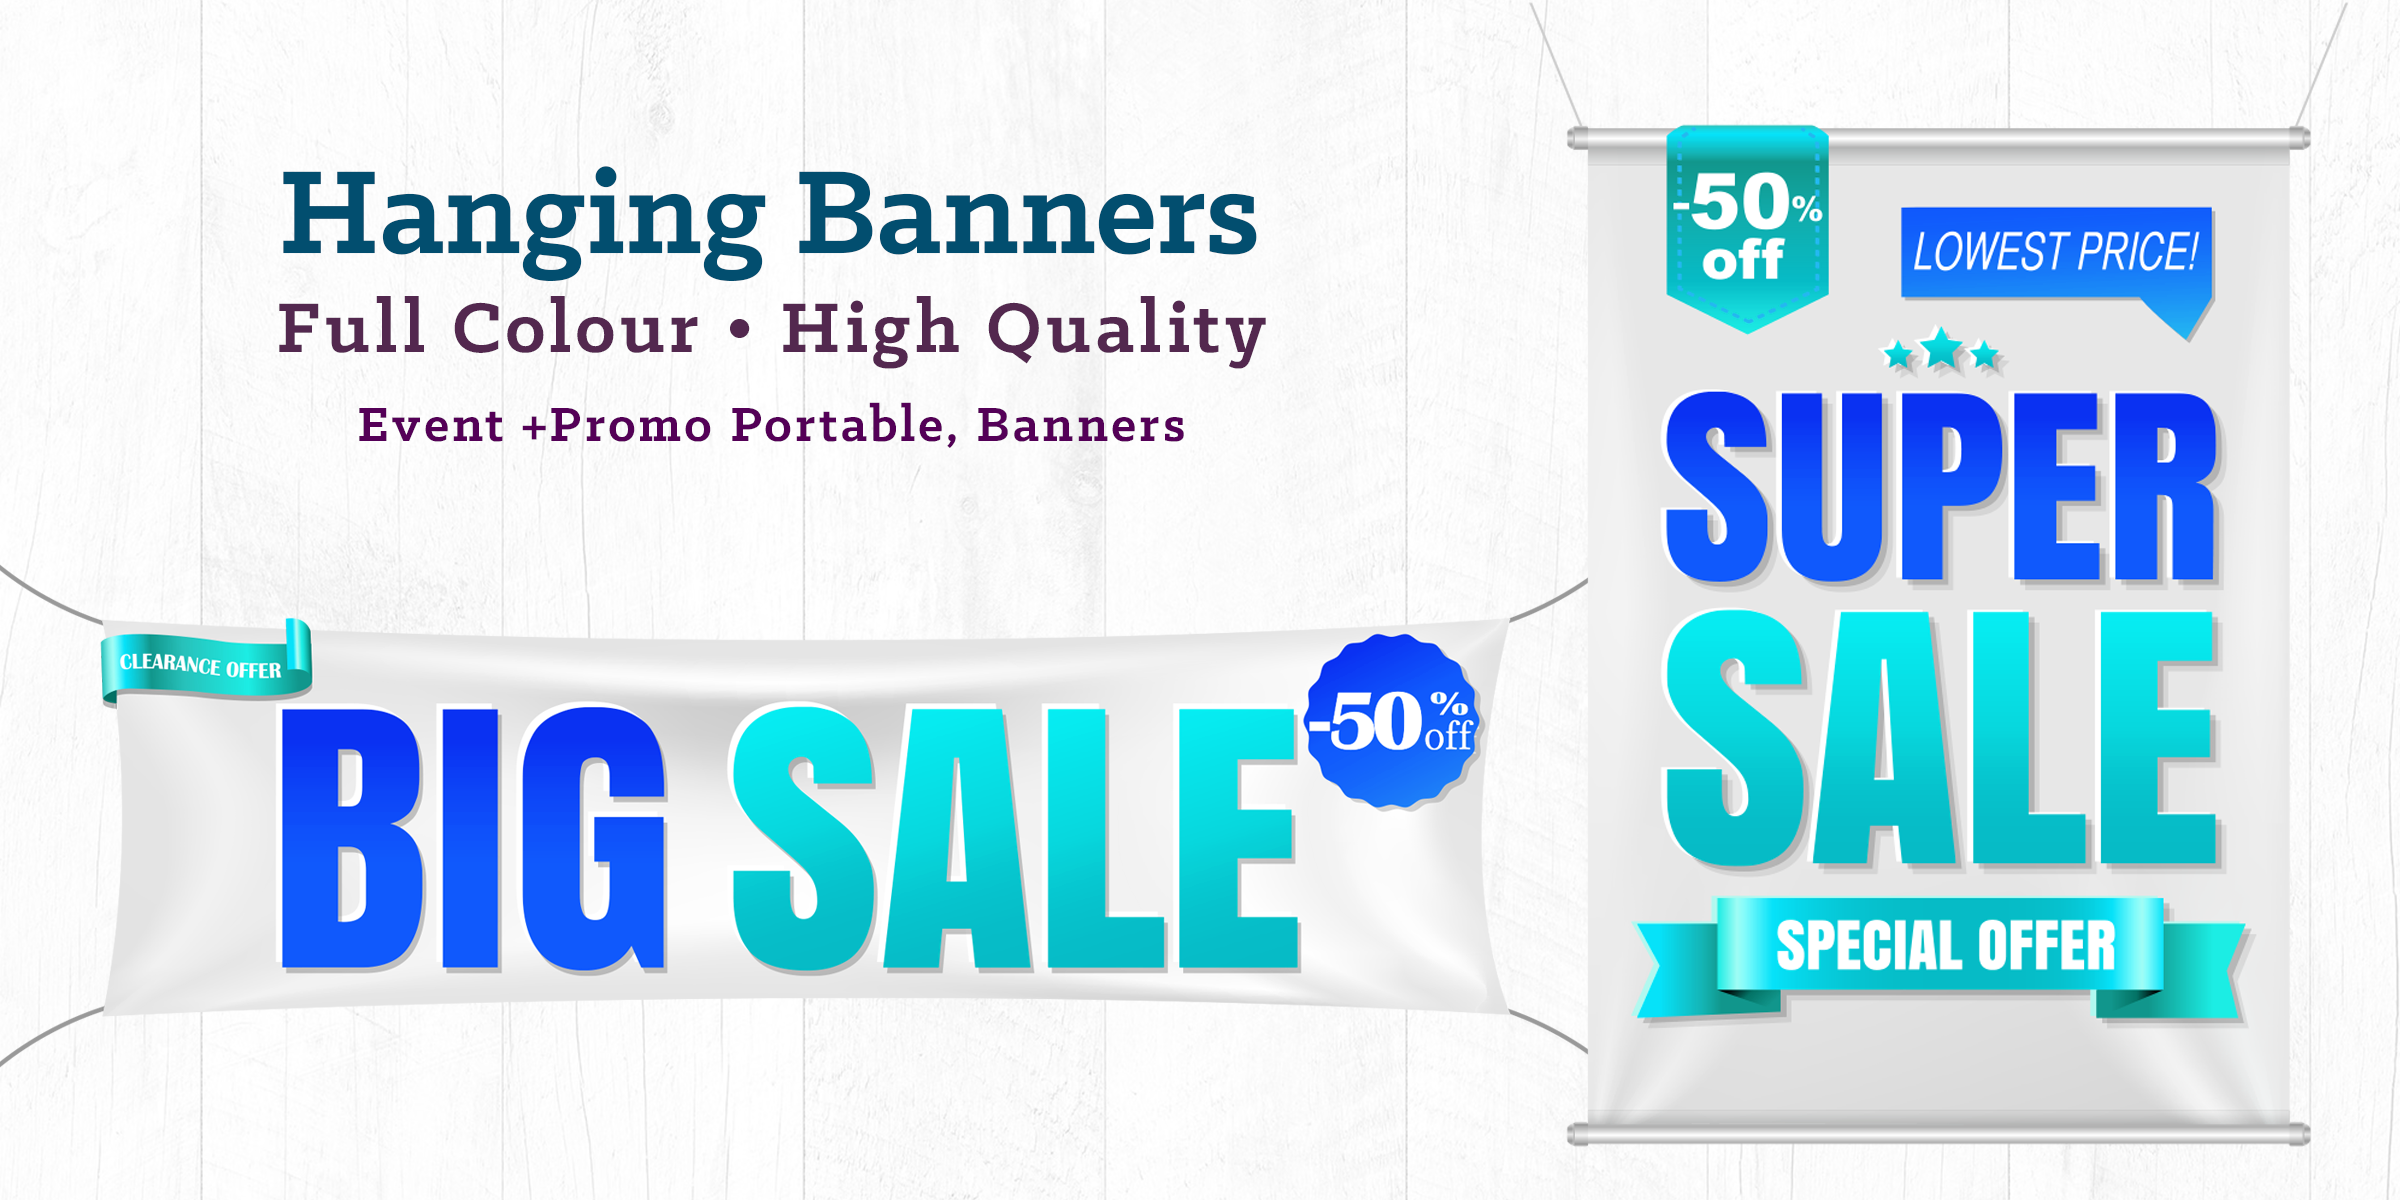 SIGNAGE HANGING BANNERS